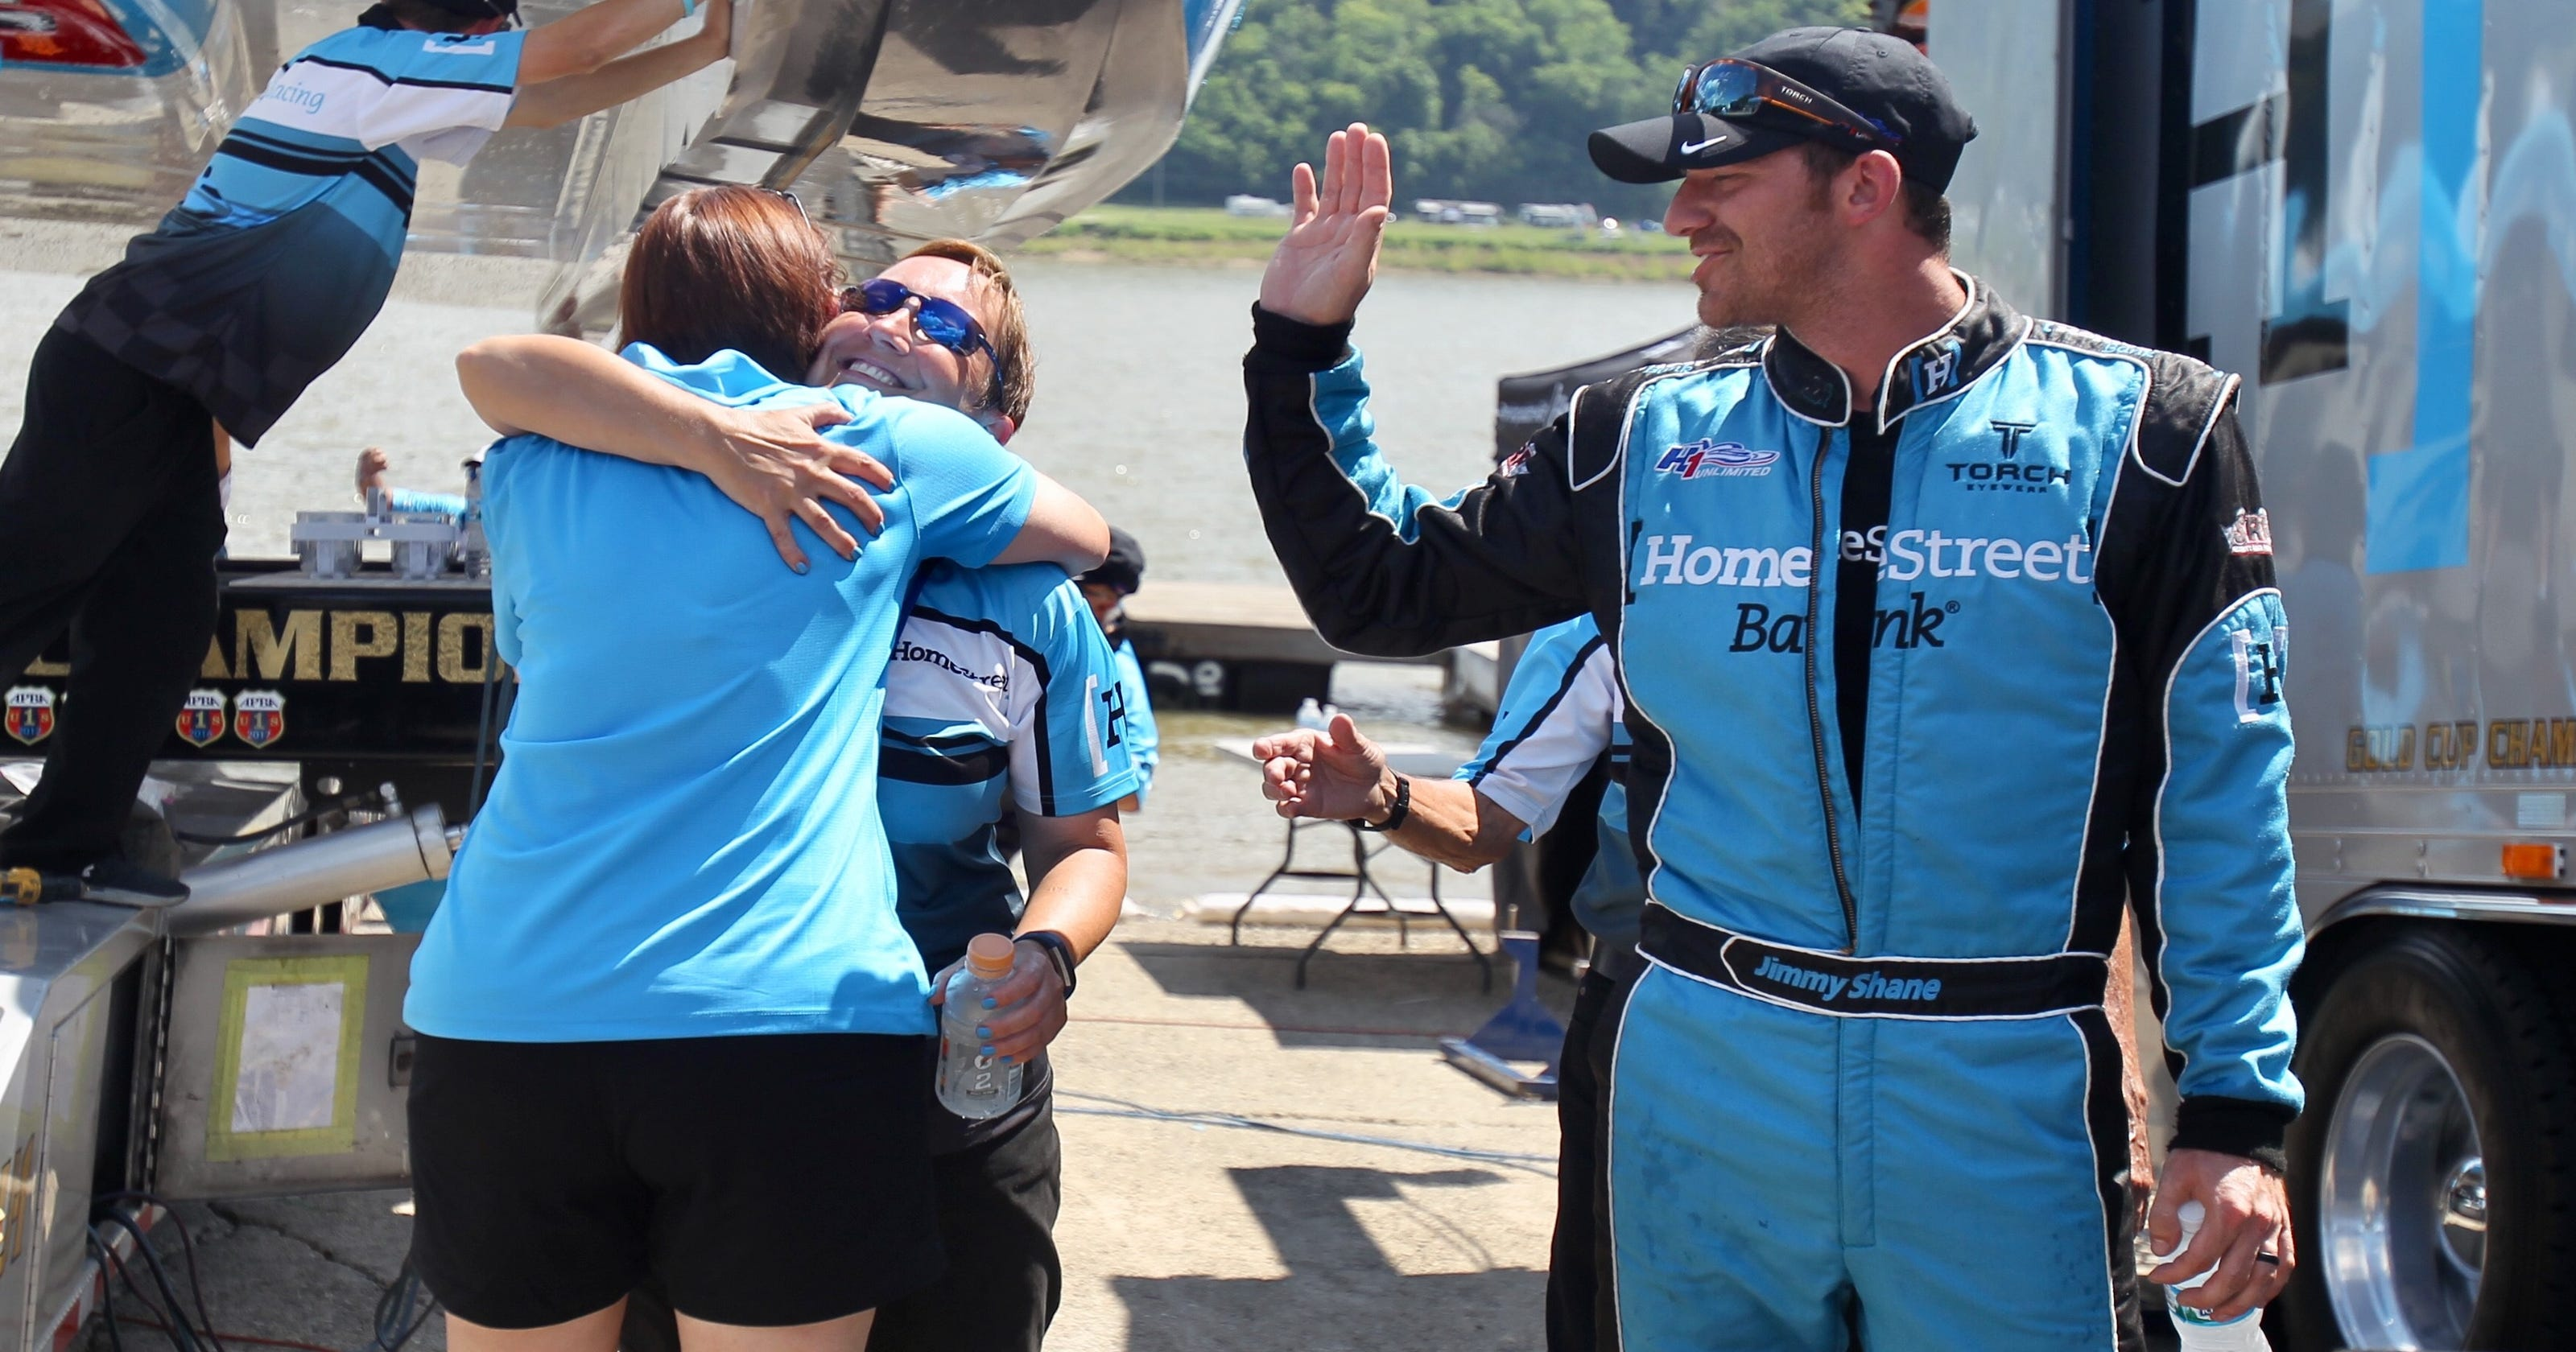 Madison Regatta a successful homecoming for Cindy Shirley